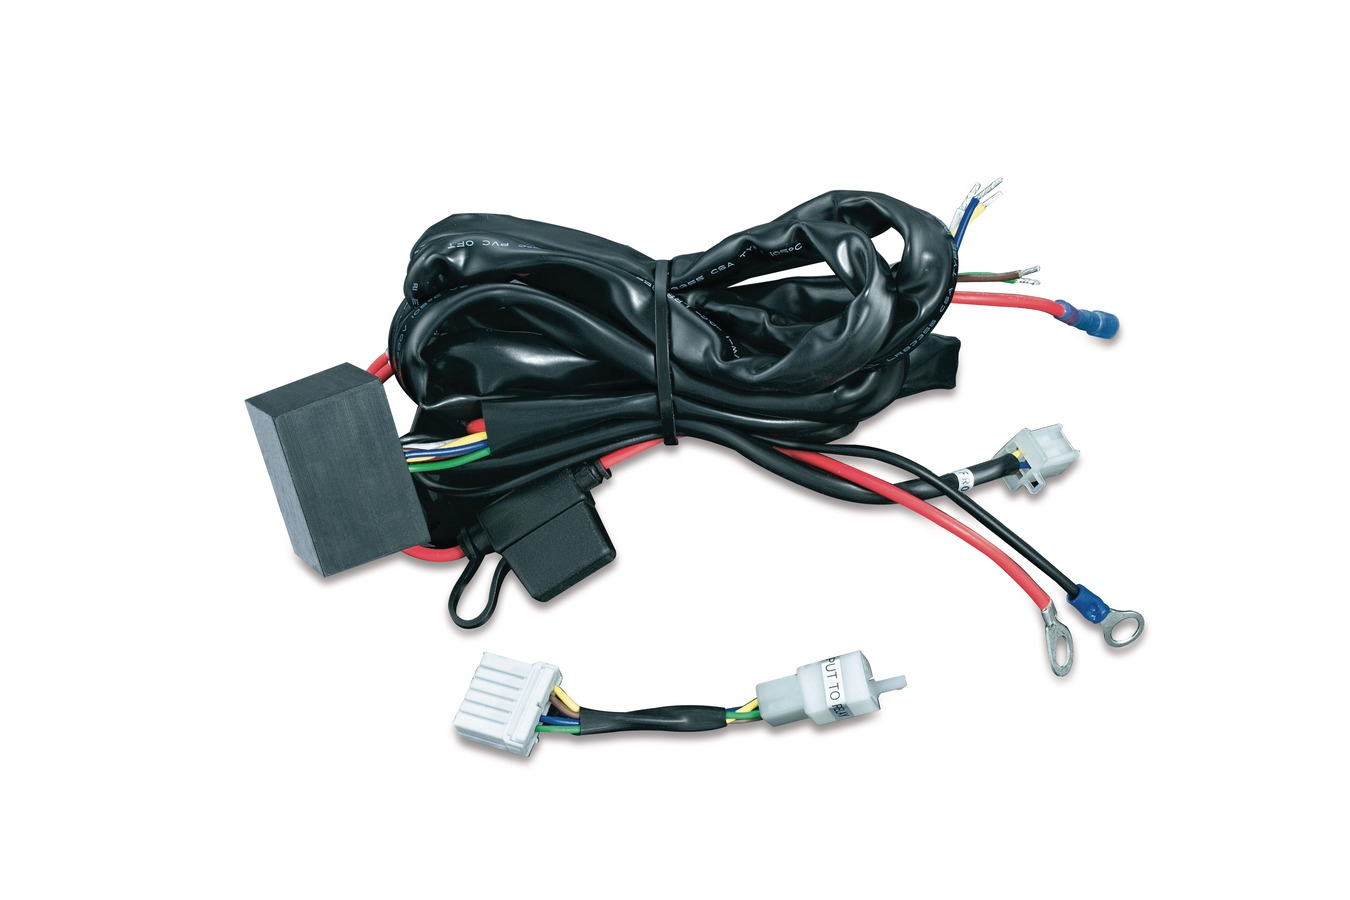 Trailer Wiring Harnesses | Trailer Hitches & Wiring | Touring - Goldwing Trailer Wiring Diagram